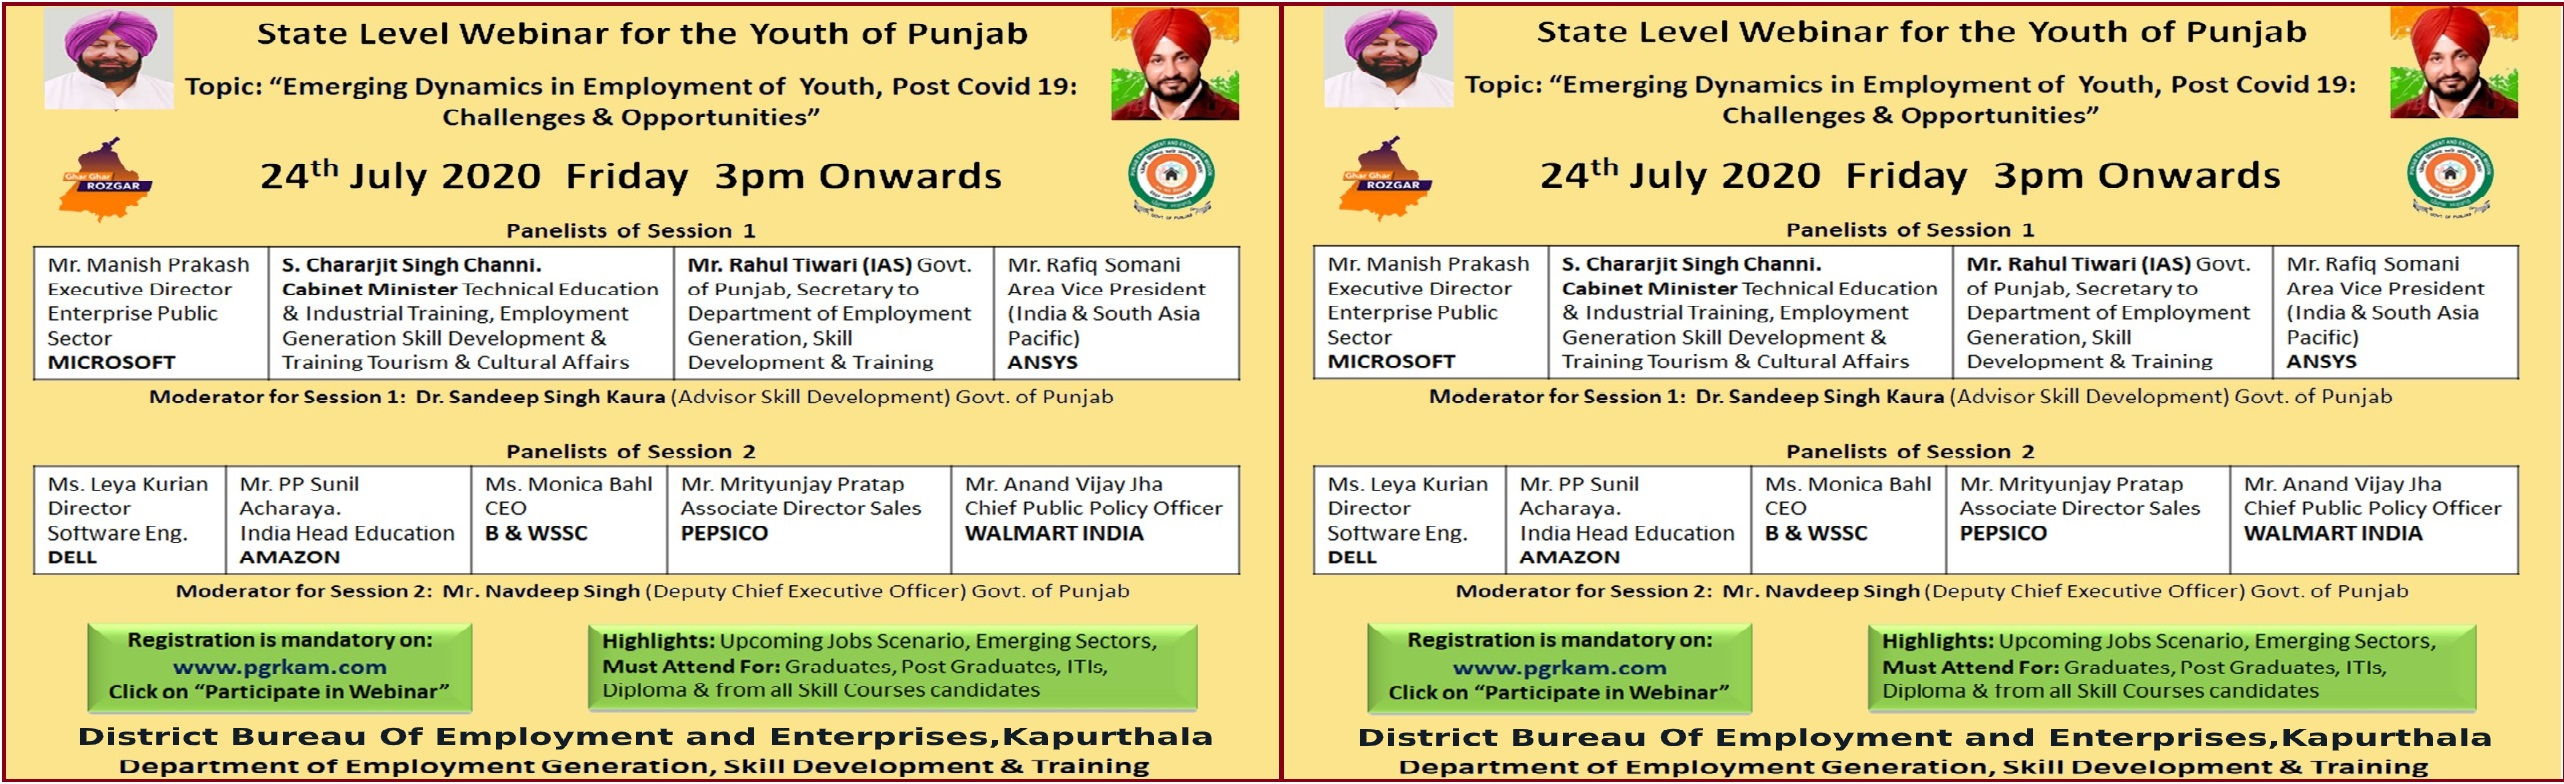 State level Webinar for the Yputh of punjab